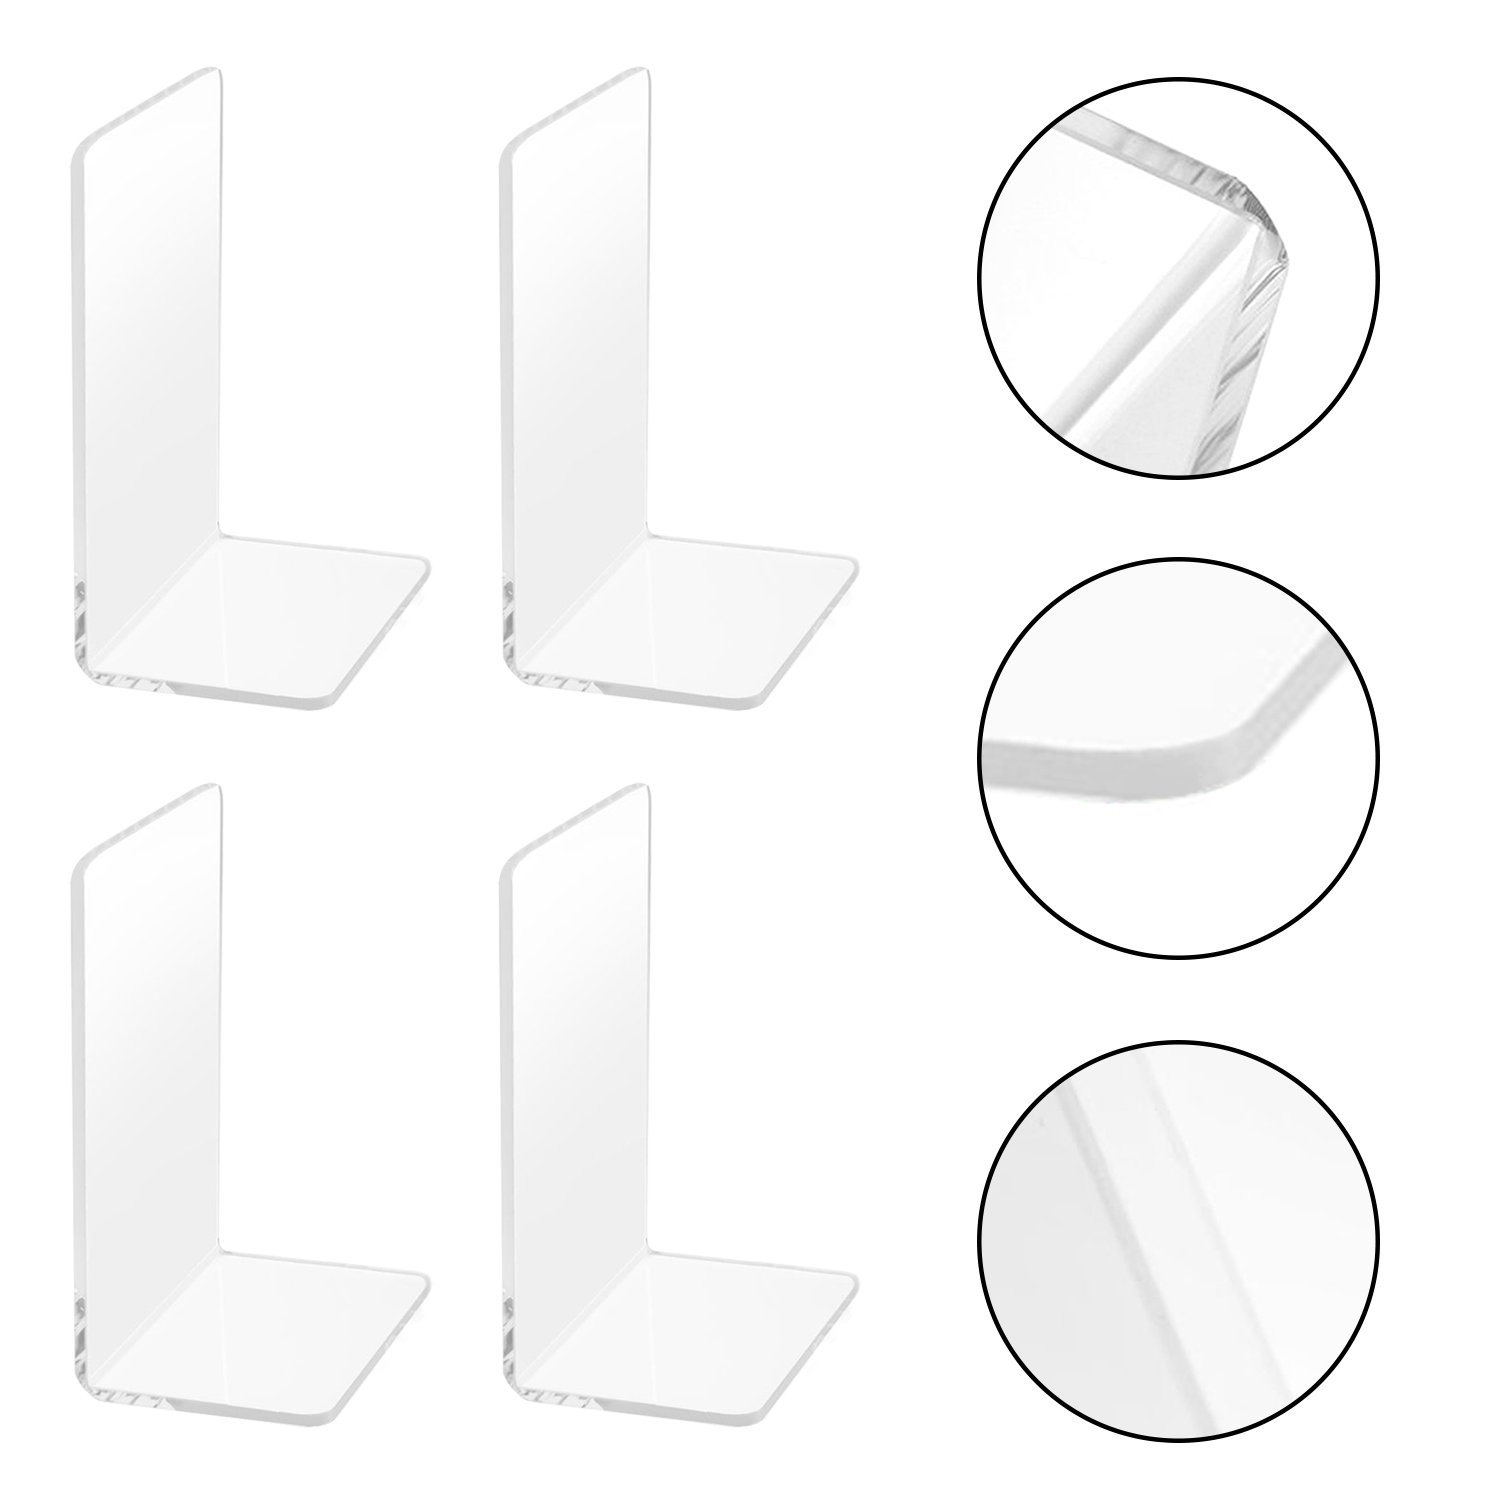 2 Pairs/4 Pieces Plastic Acrylic Bookends With Round Corner, Non-Slip Clear Bookends for Books, Movies, DVDs, Magazines, Perfect for Bedroom Bookshelf Library School Office, Transparent, 7.3 x4.8 inch